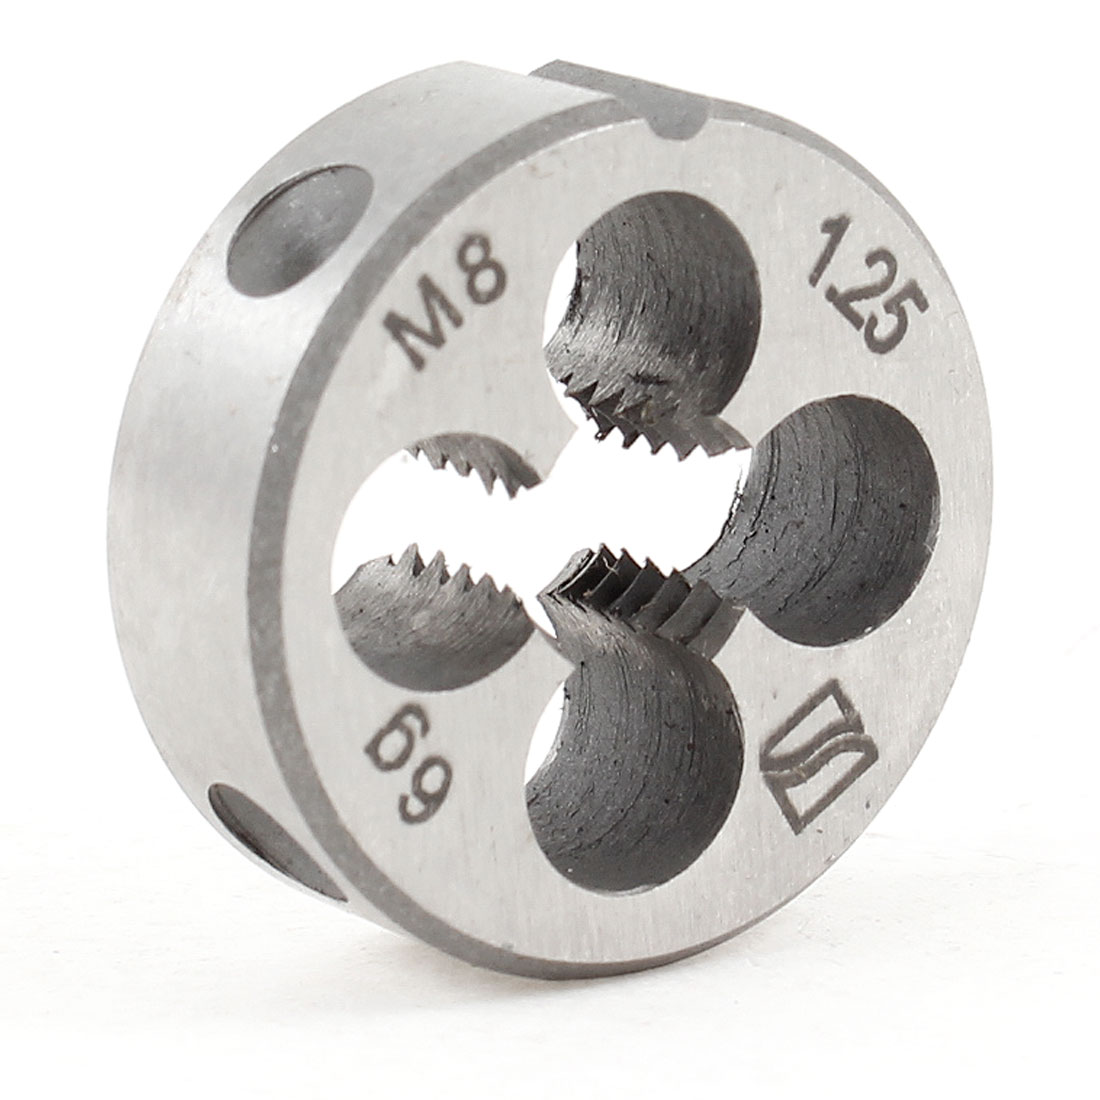 Steel 25mm Outside Diameter Metric M8 Screw Thread Round Die Tool